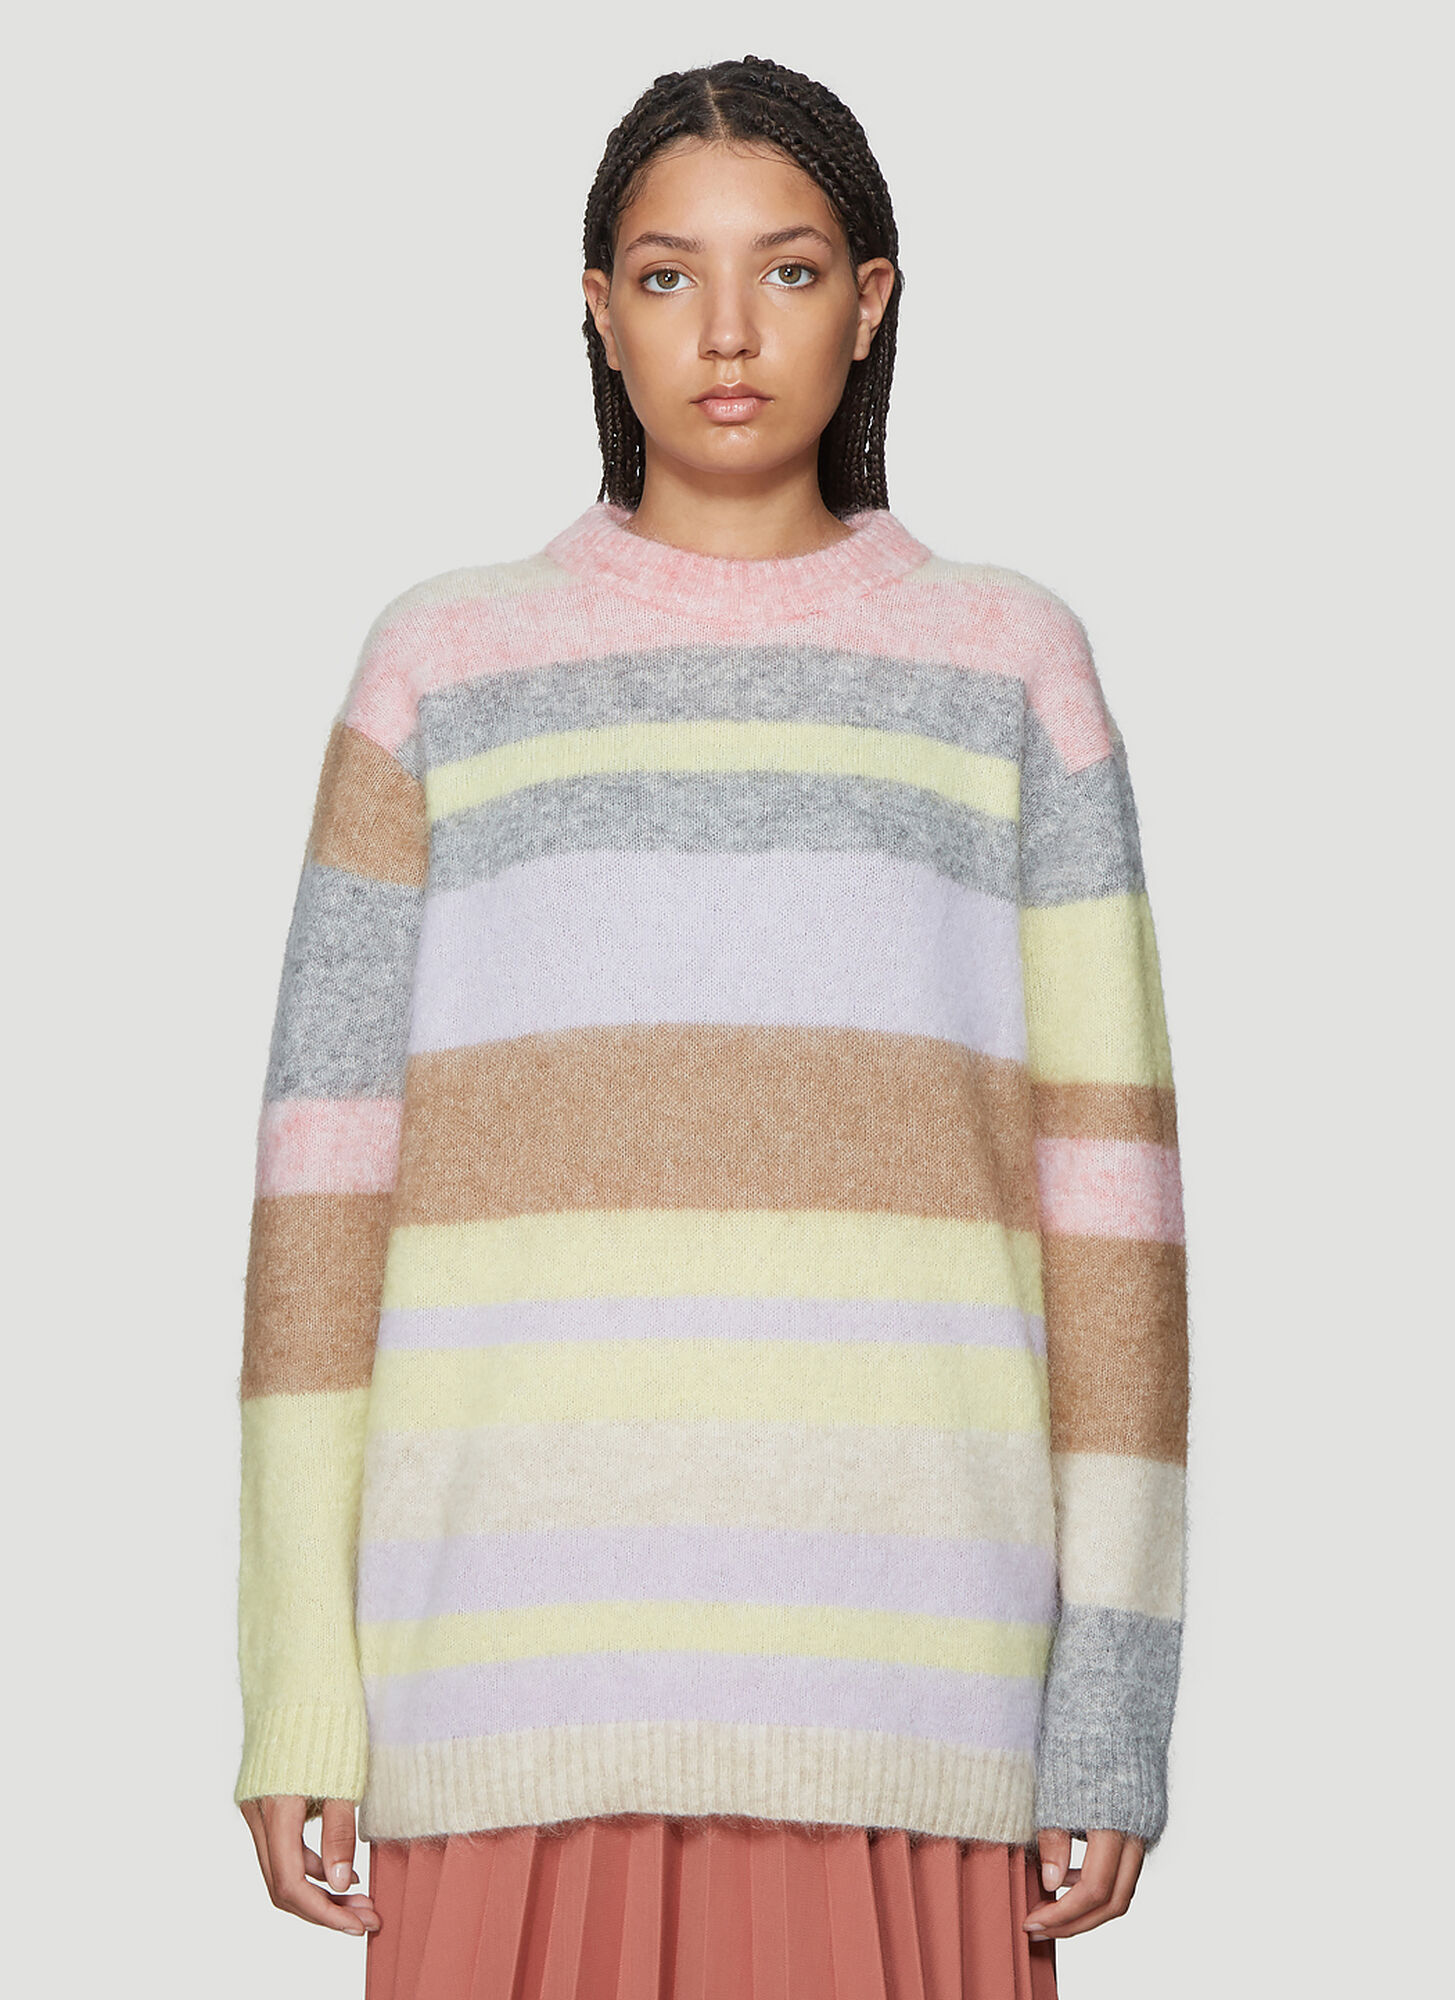 Acne Studios Striped Kalbah Knit in Pink